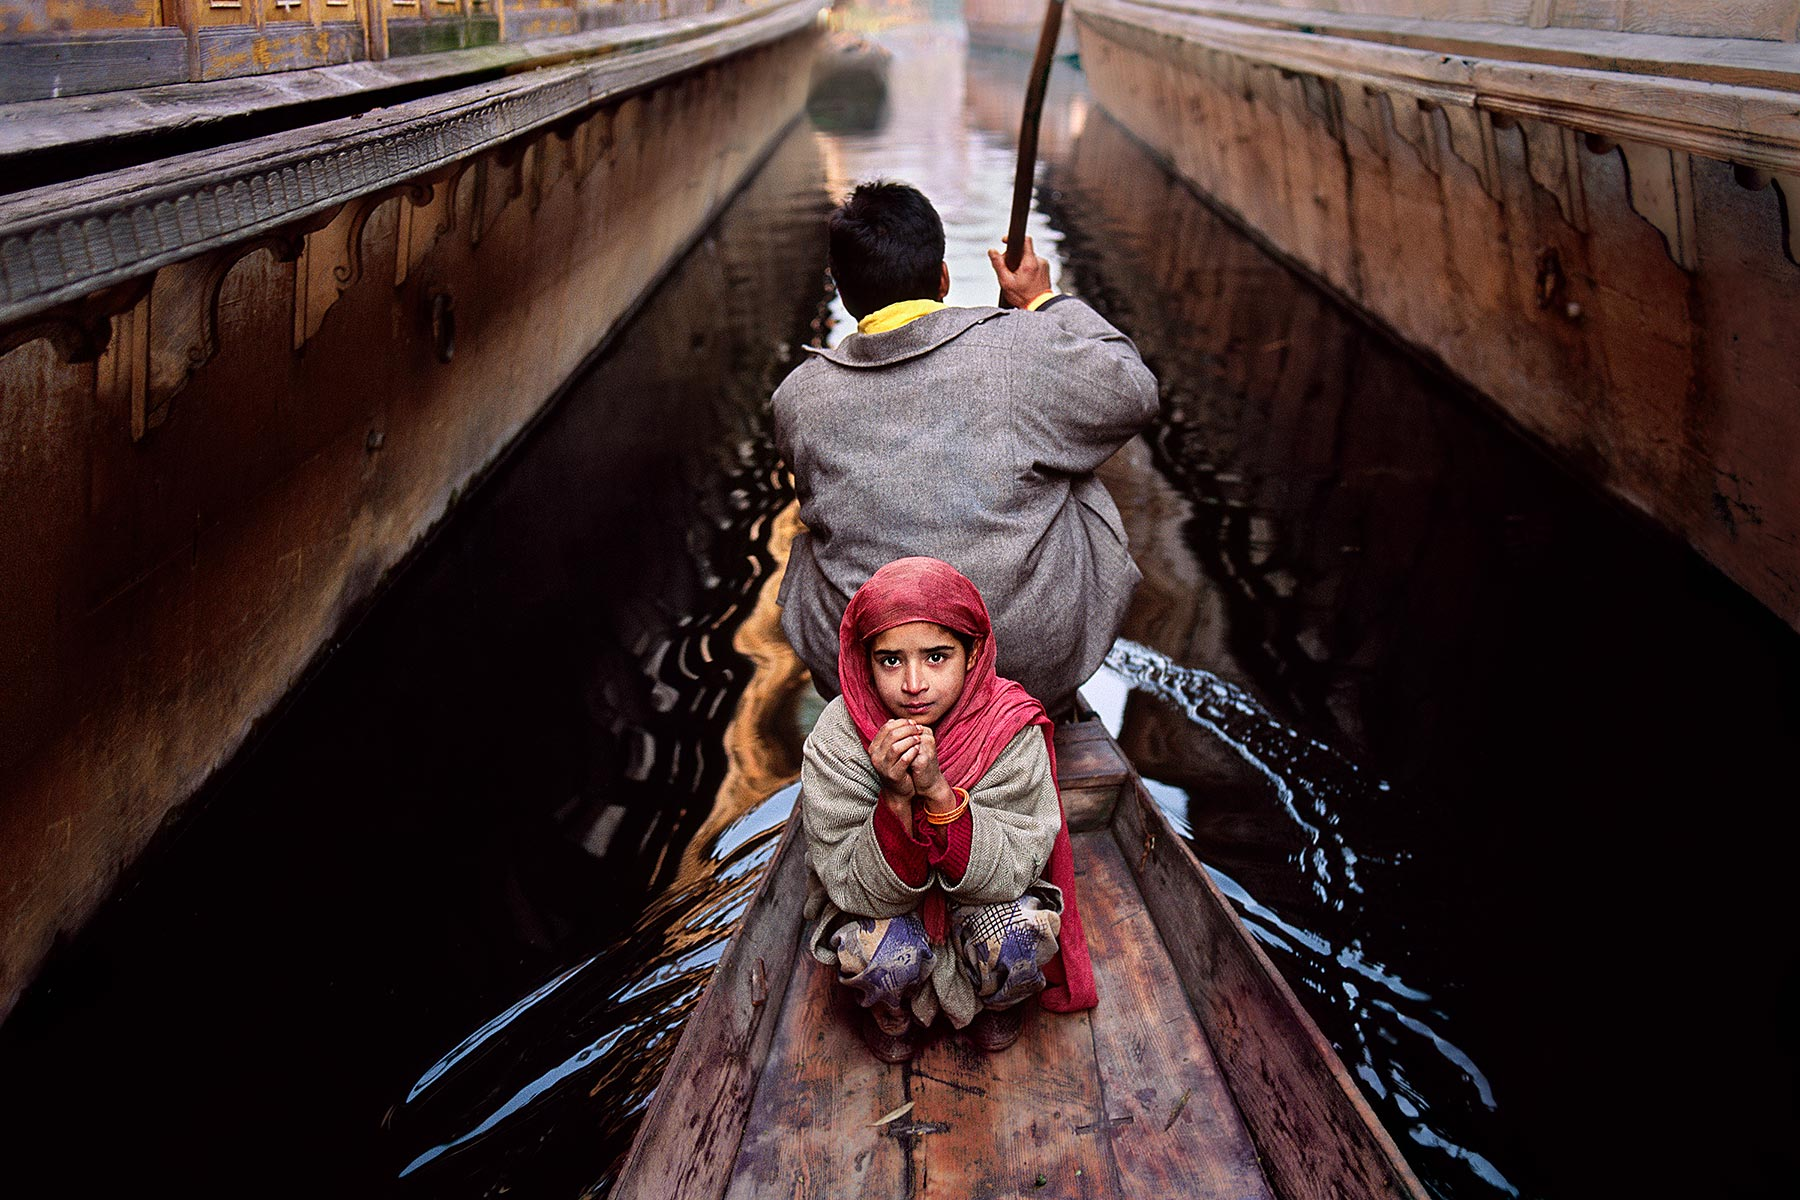 Photo by Steve McCurry.